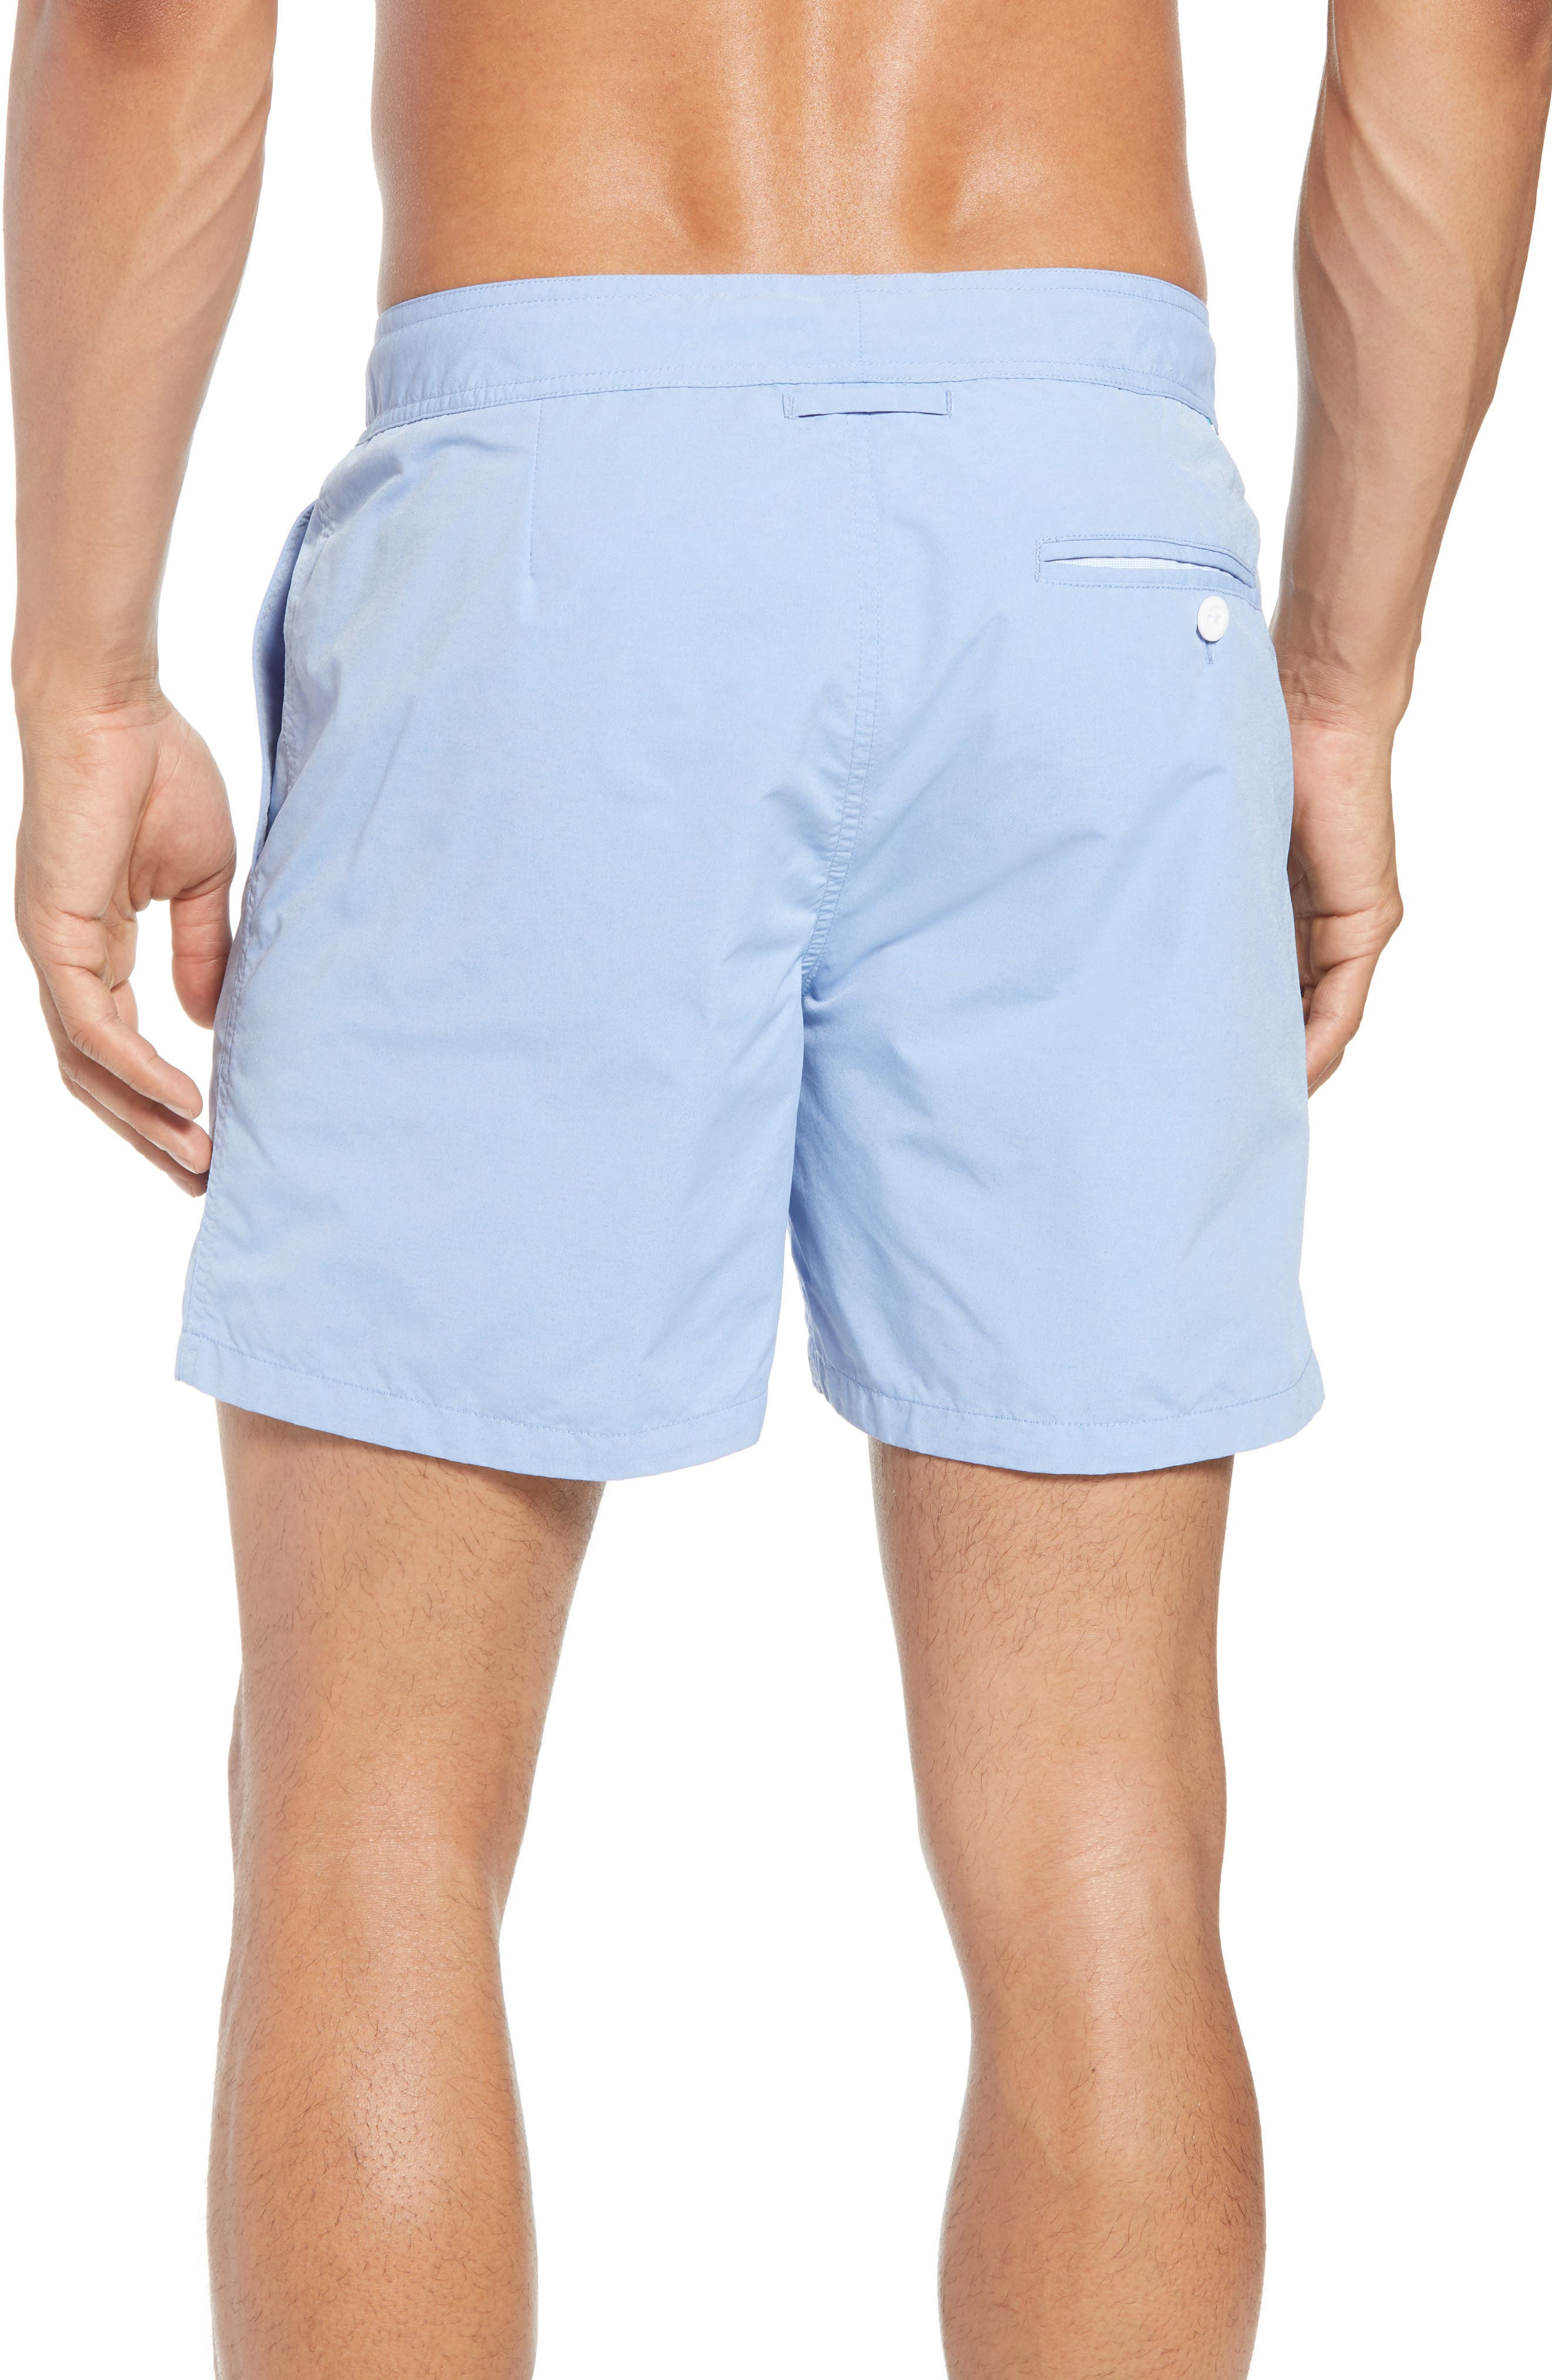 Solid 5-Inch Swim Trunks,                             Alternate thumbnail 2, color,                             Blue Chambray